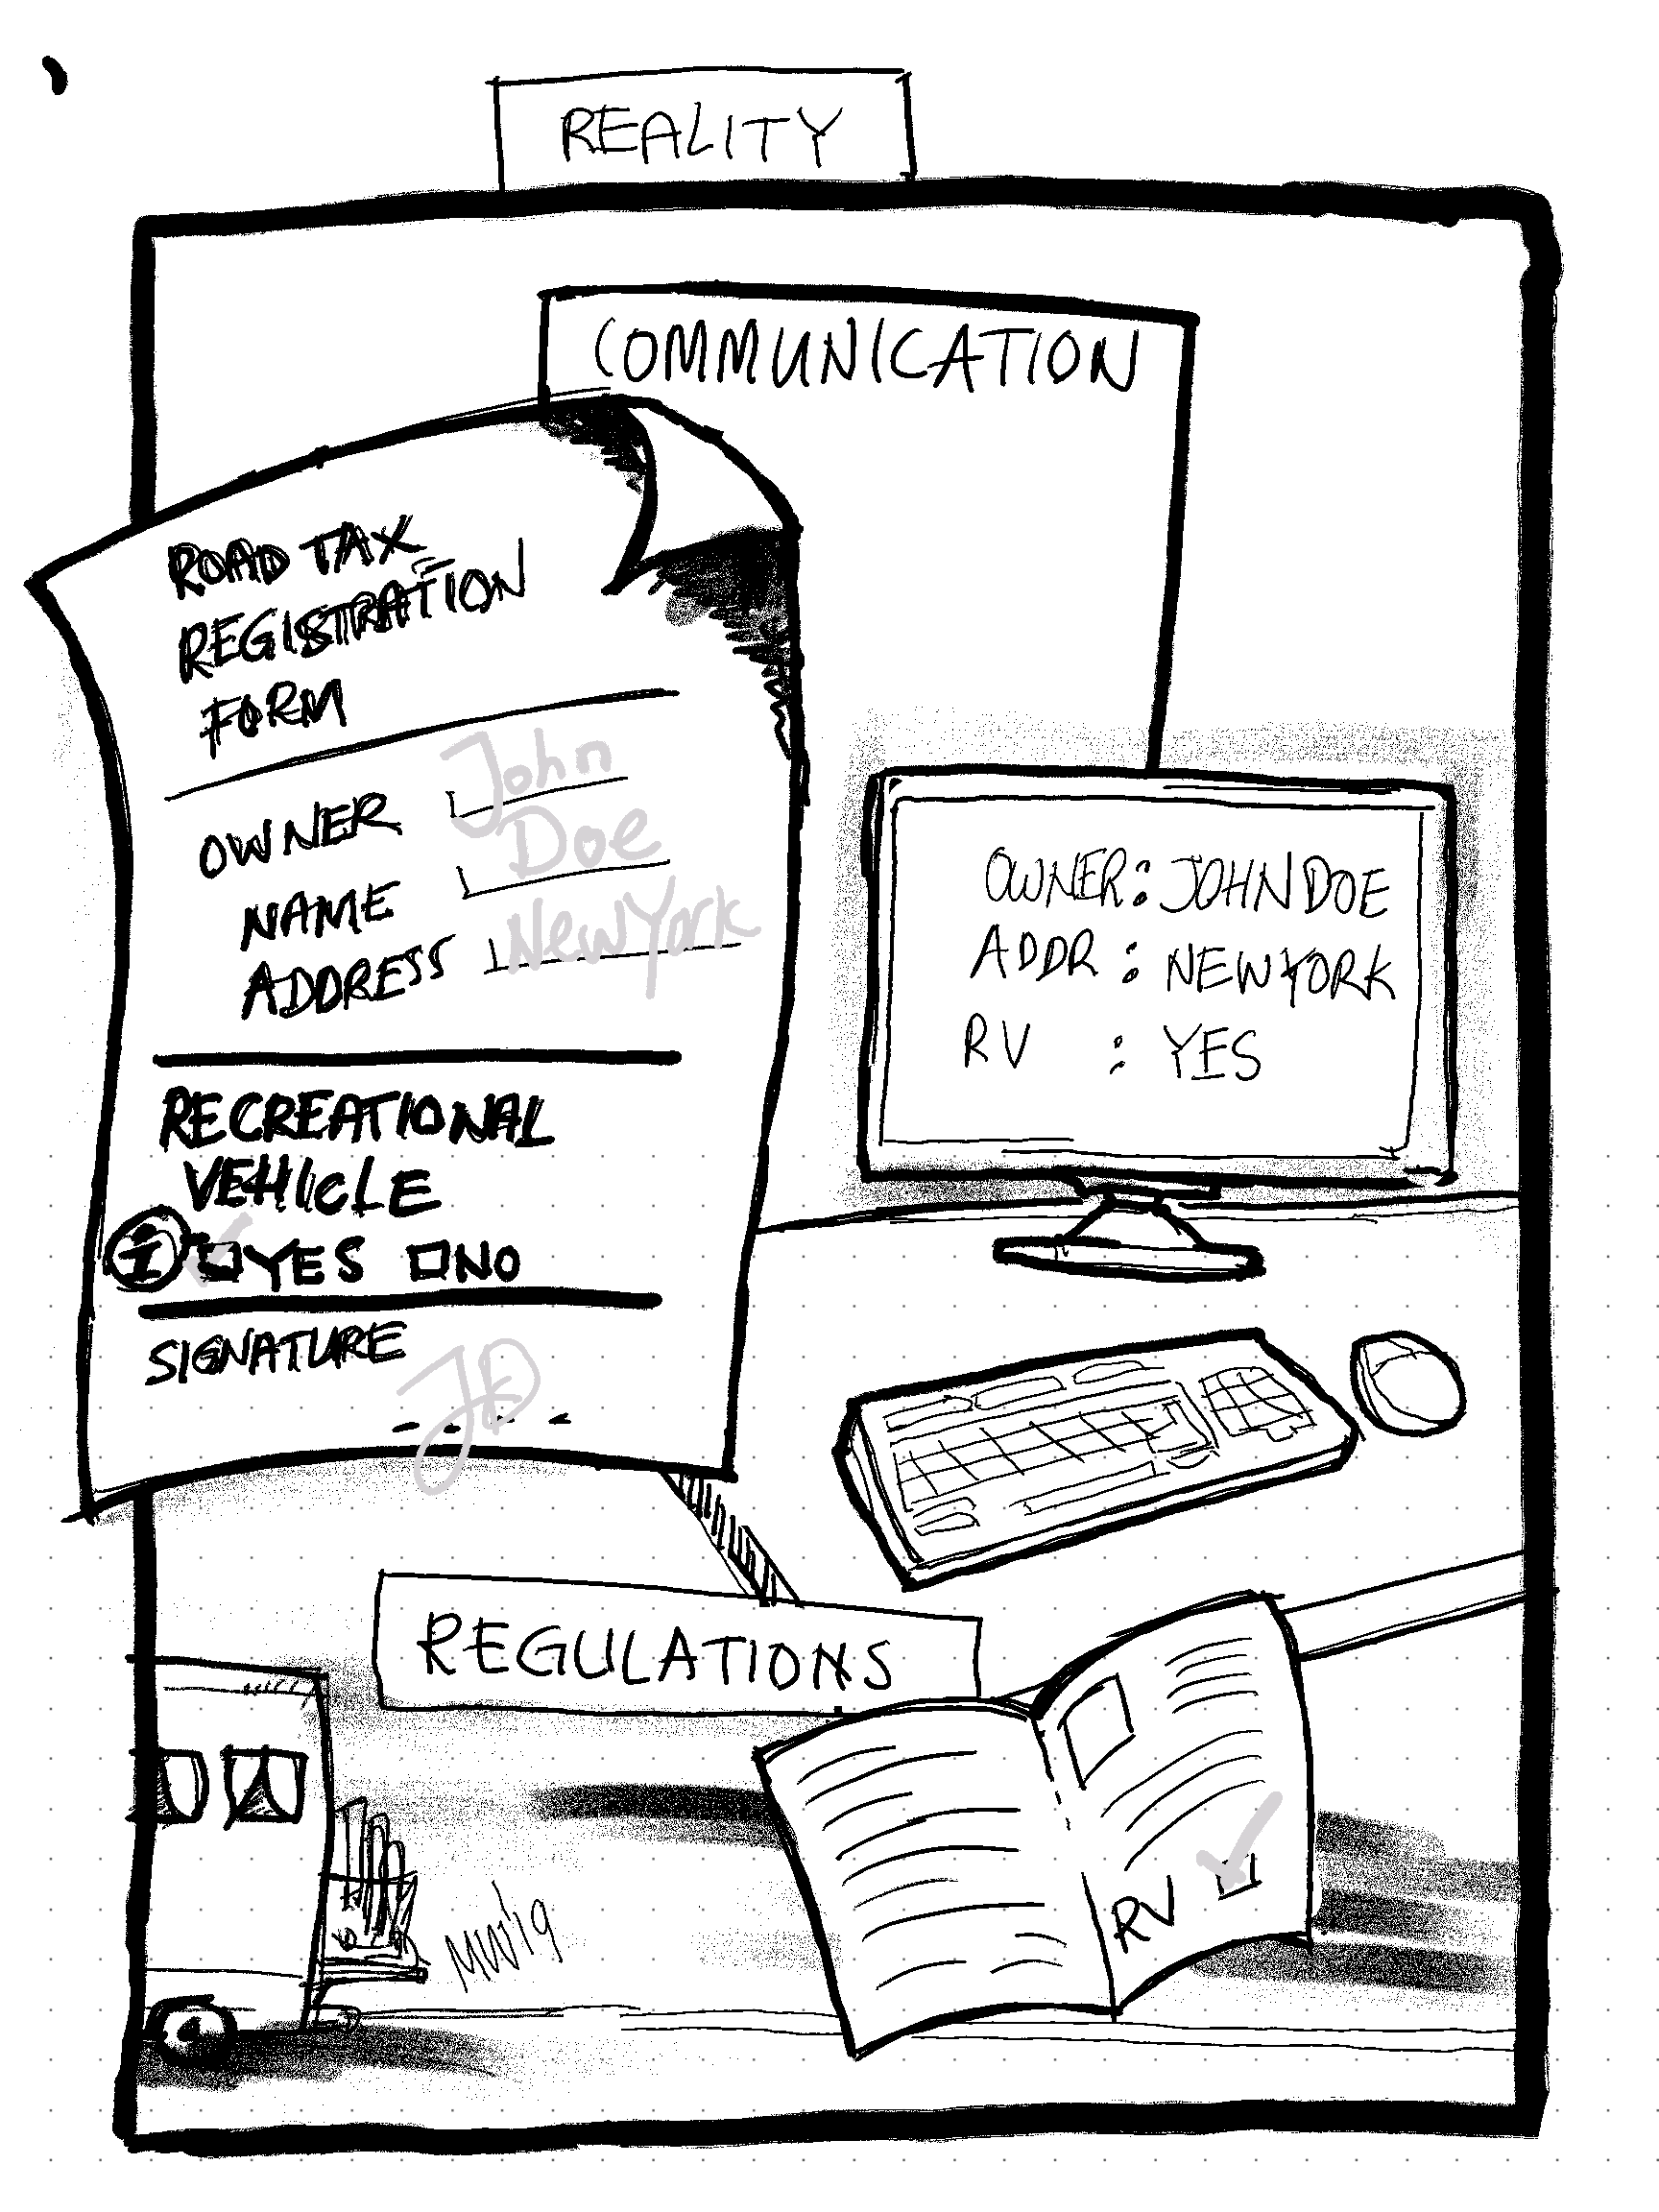 reality vs regulations vs communication 2